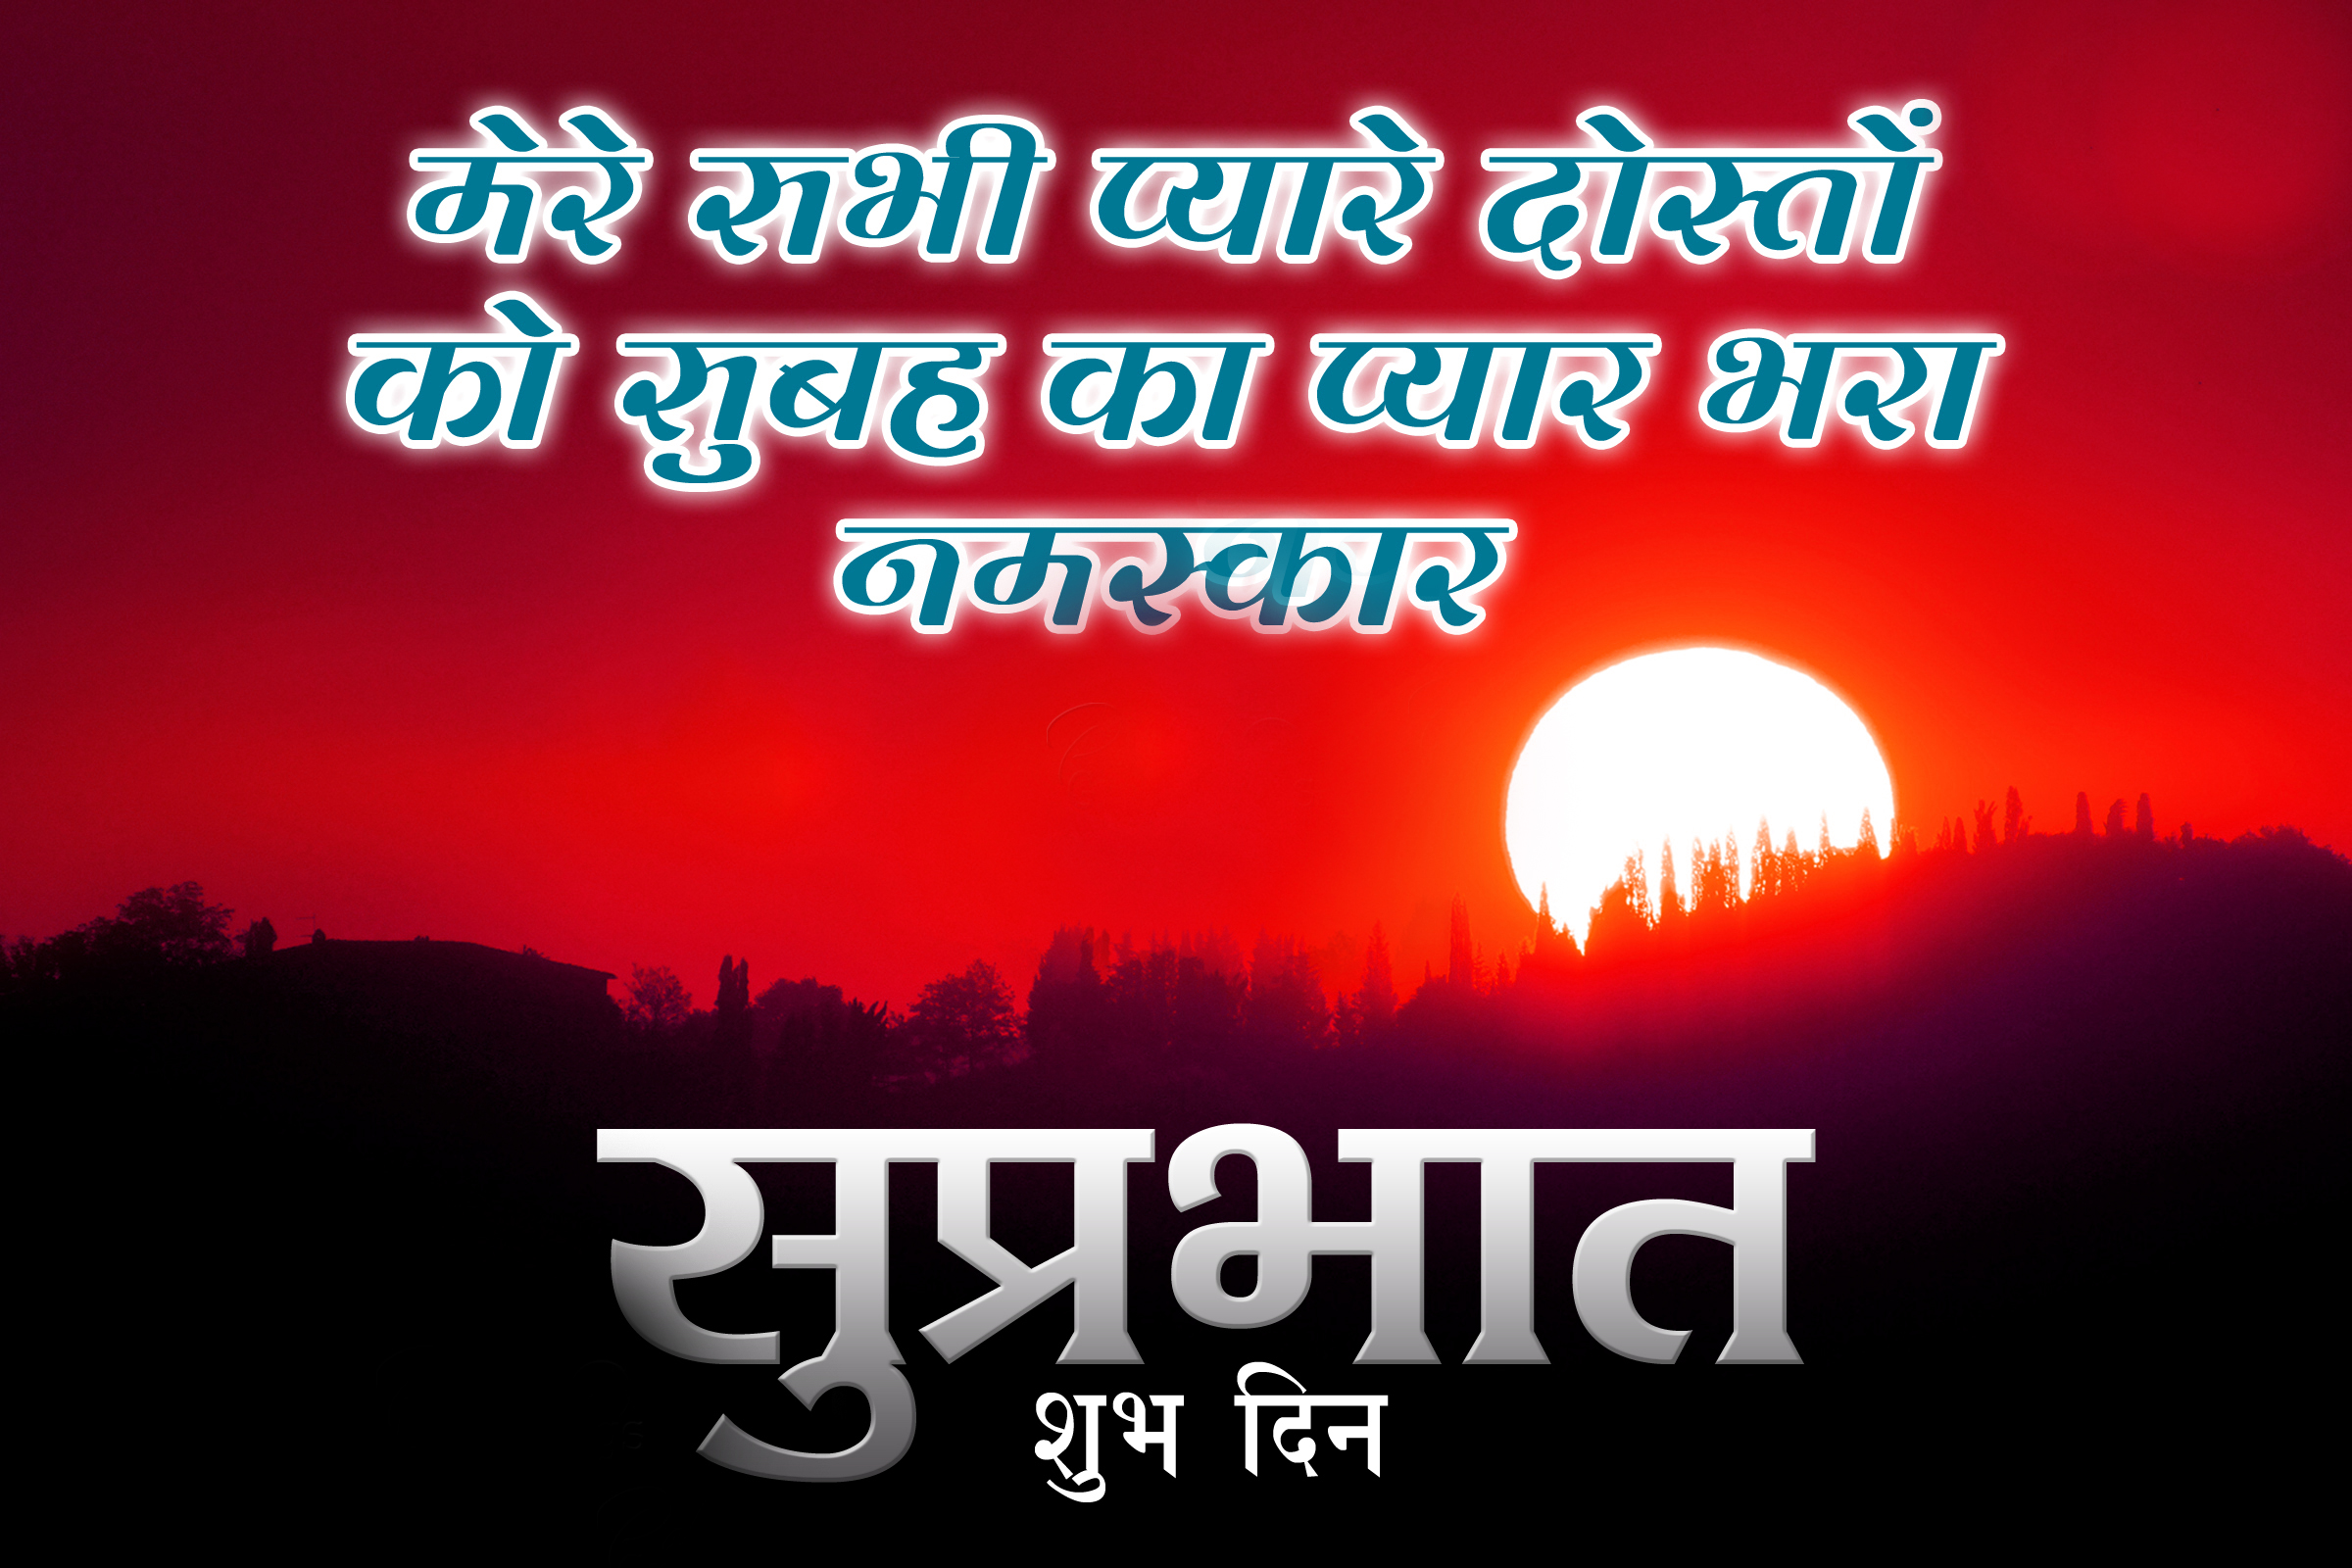 Good morning hindi image hd download